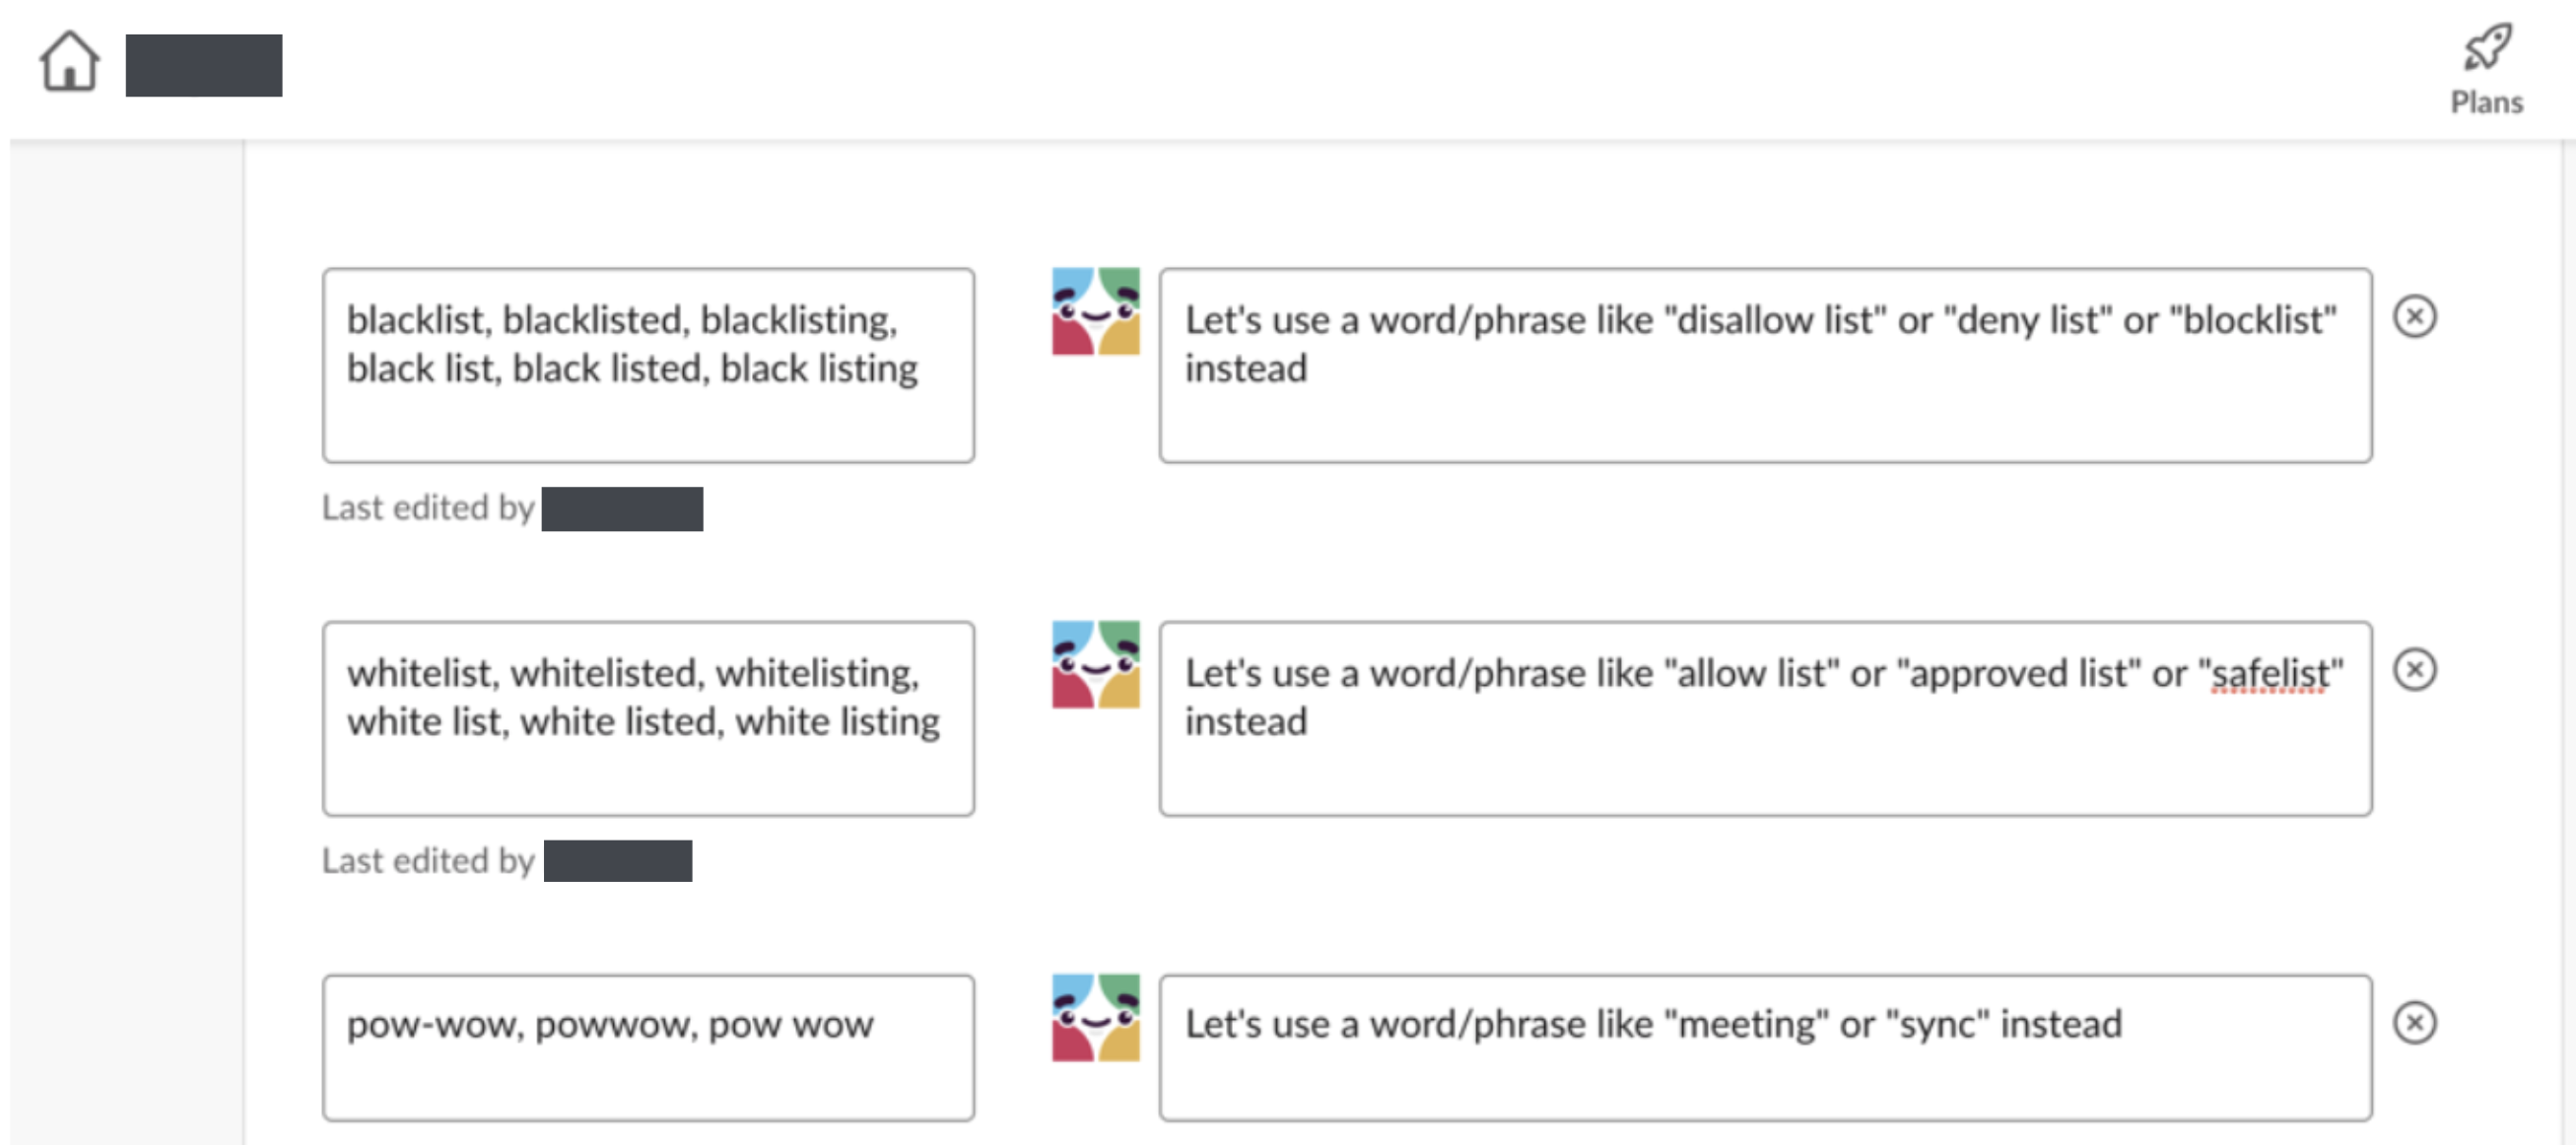 Screenshot of setting up the Slackbot. For example, whenever anyone types blacklist, it says Let's use a word/phrase like disallow list or deny list or blocklist instead.